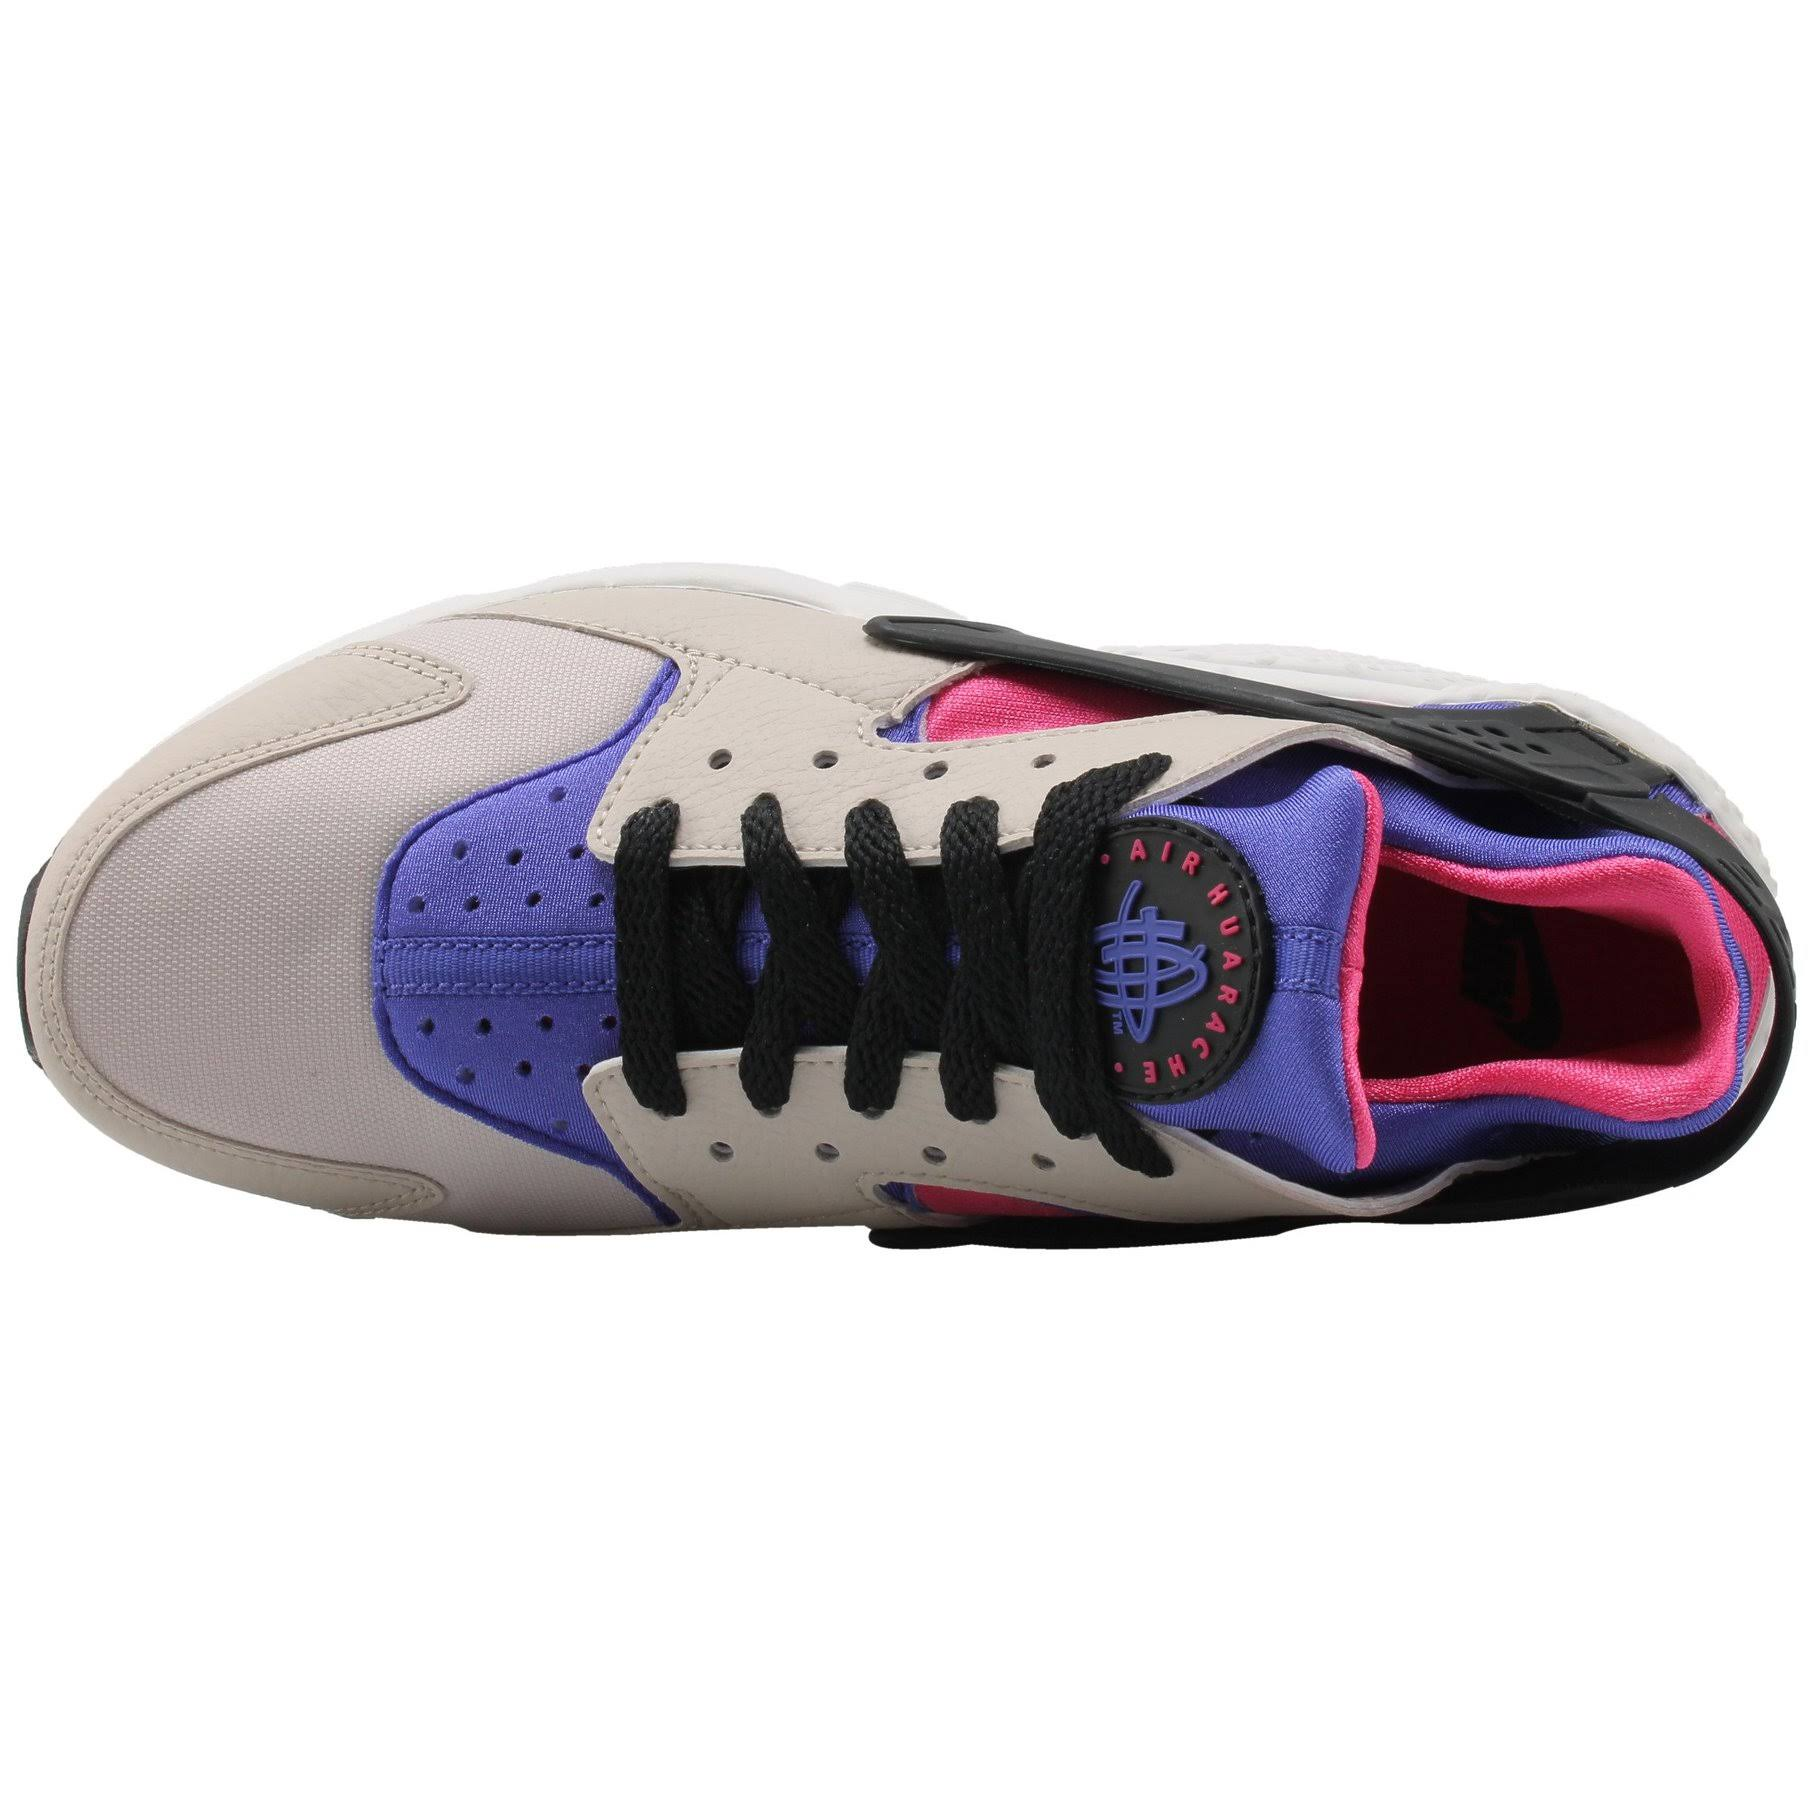 318429 Nike 12 Air Run Unisex 056 Huarache Shoes wU8fTnqFU